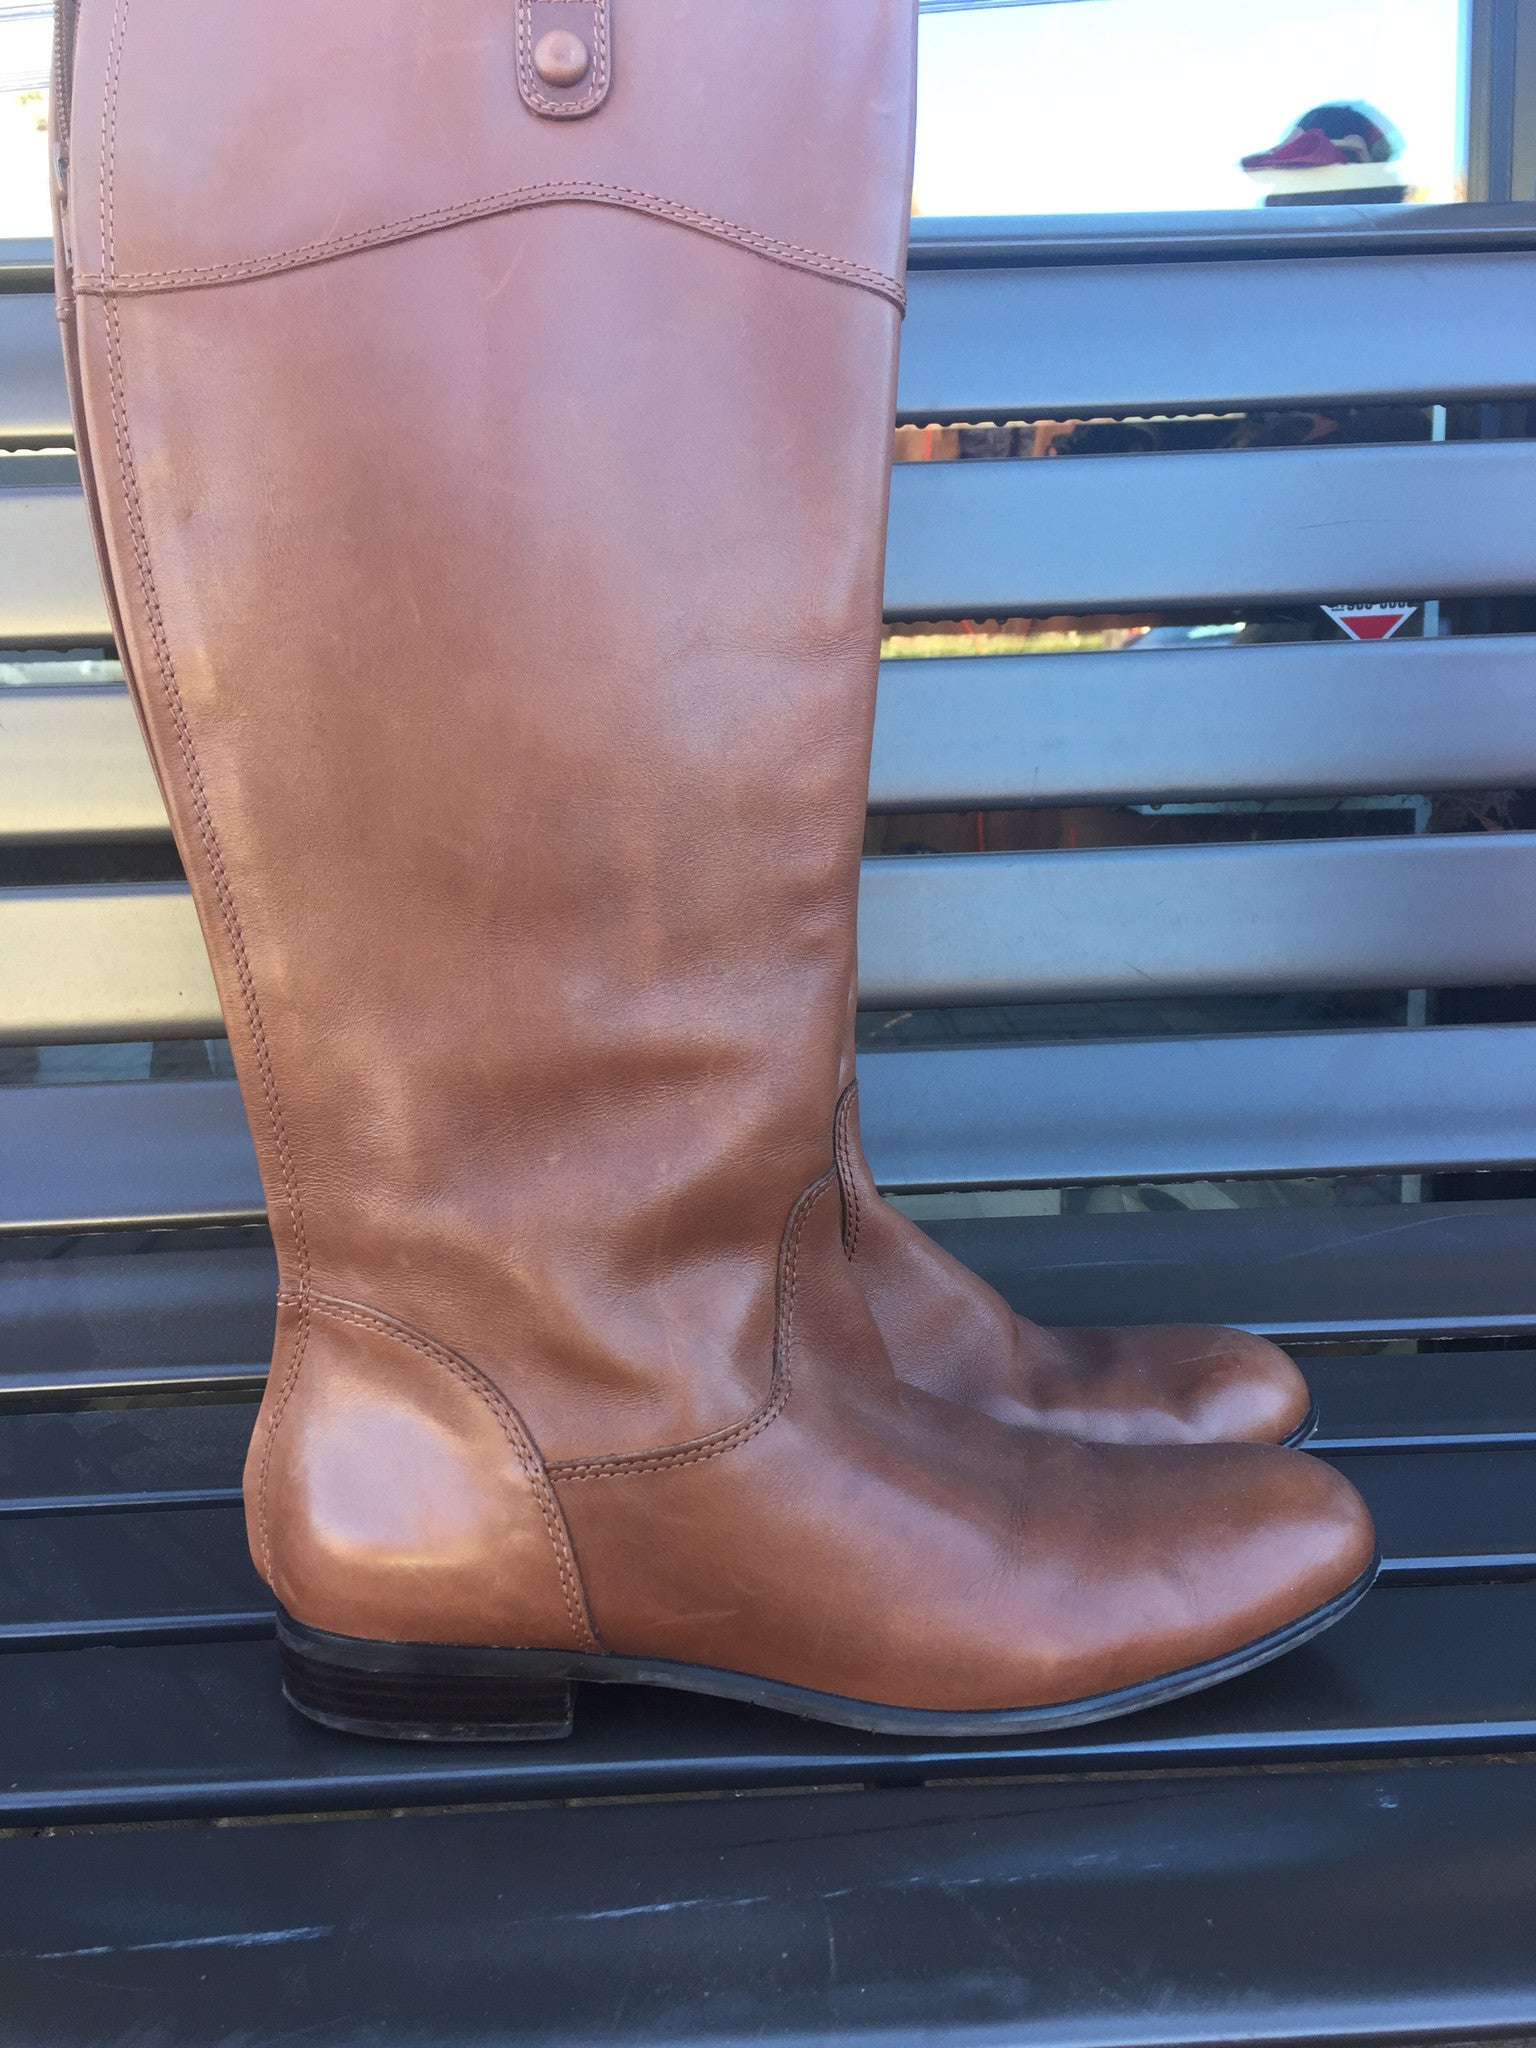 Ciao Bella Tan Leather Riding Boots: Sz 9.5